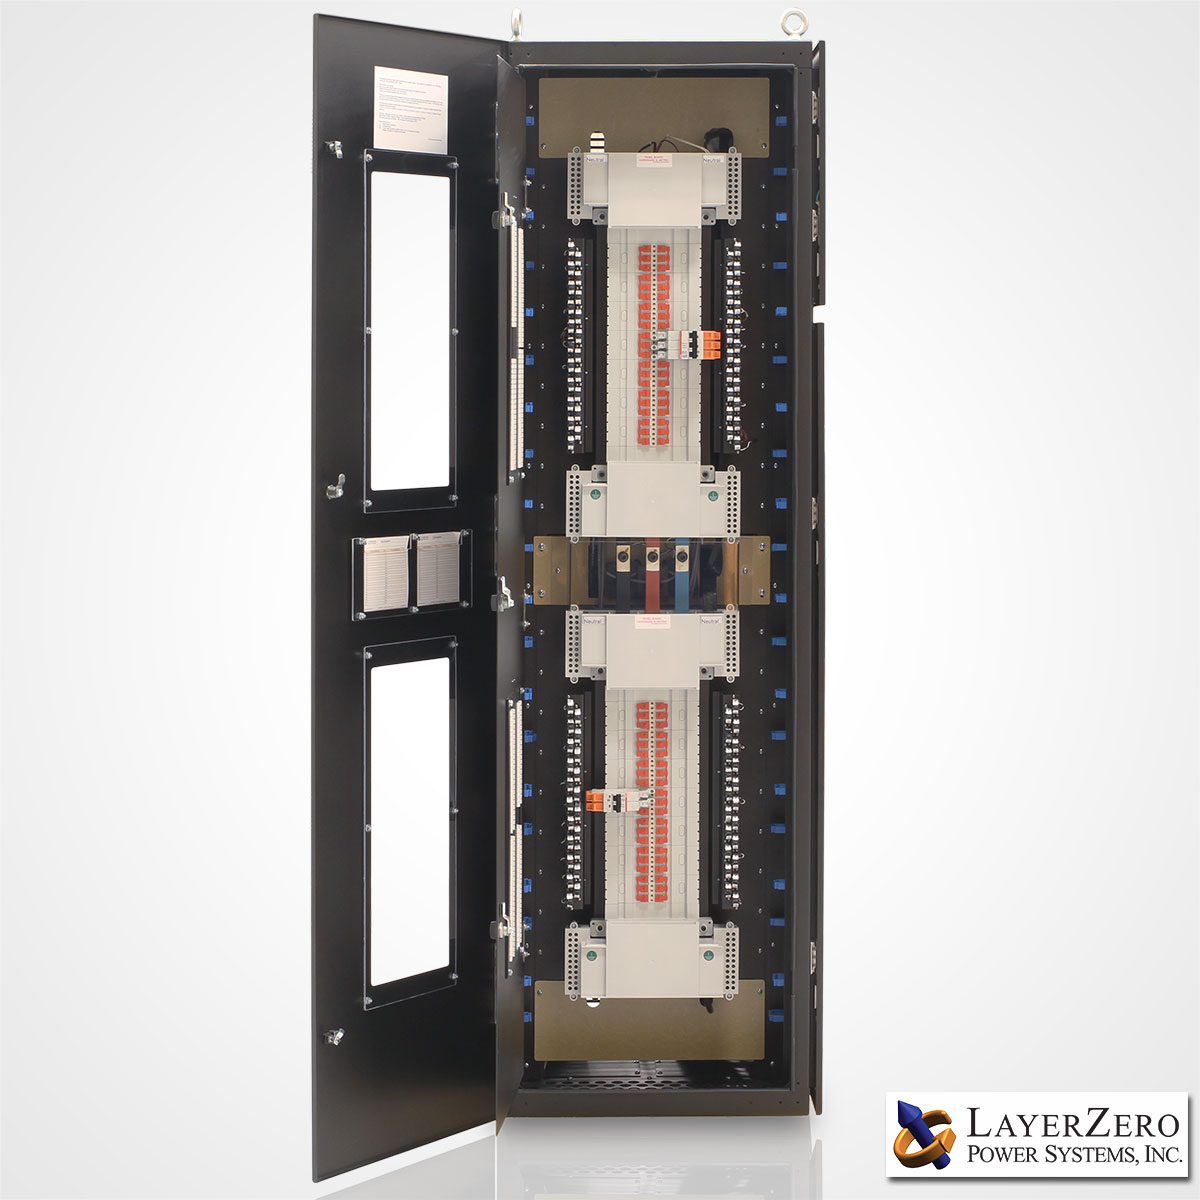 LayerZero Series 70: eRPP-FS SafePanel Finger Safe NFPA-70E Inspired Power Distribution.